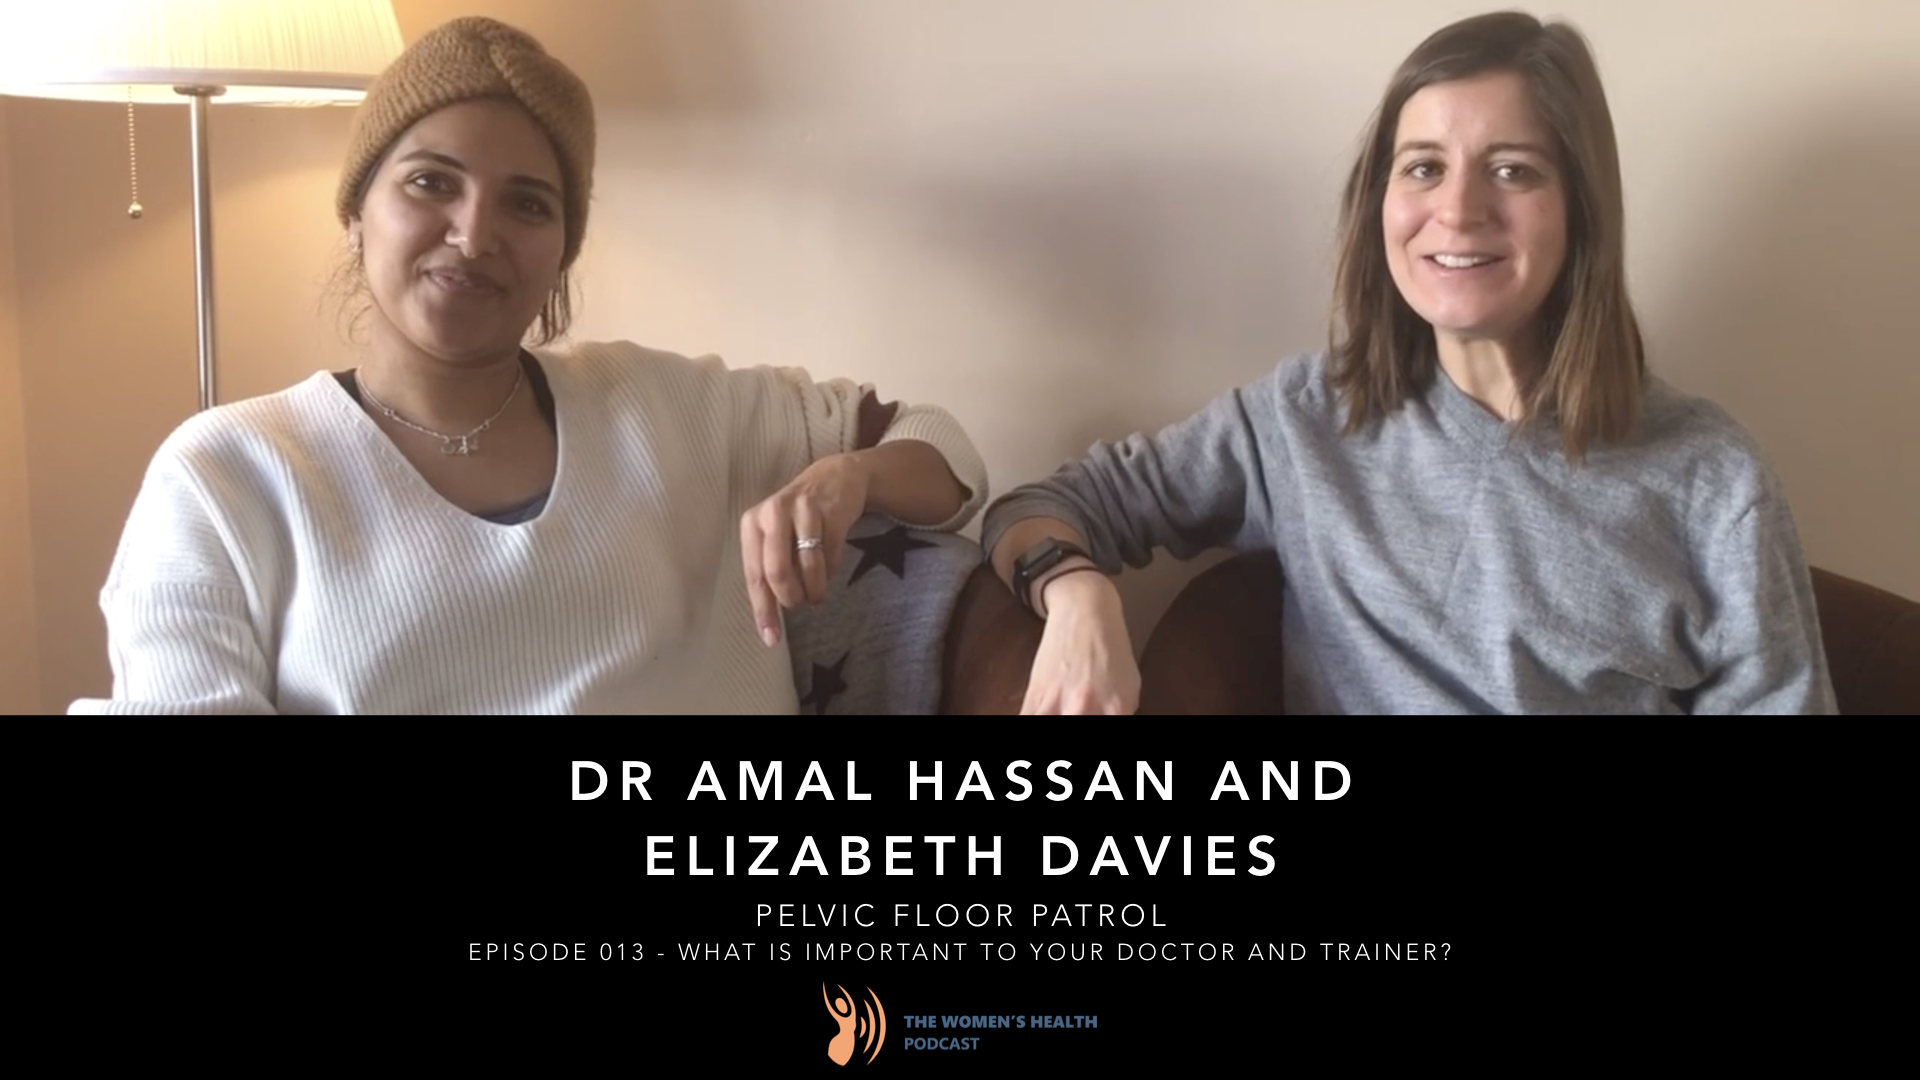 013 – What is important to your doctor and trainer? With Dr Amal Hassan and Elizabeth Davies